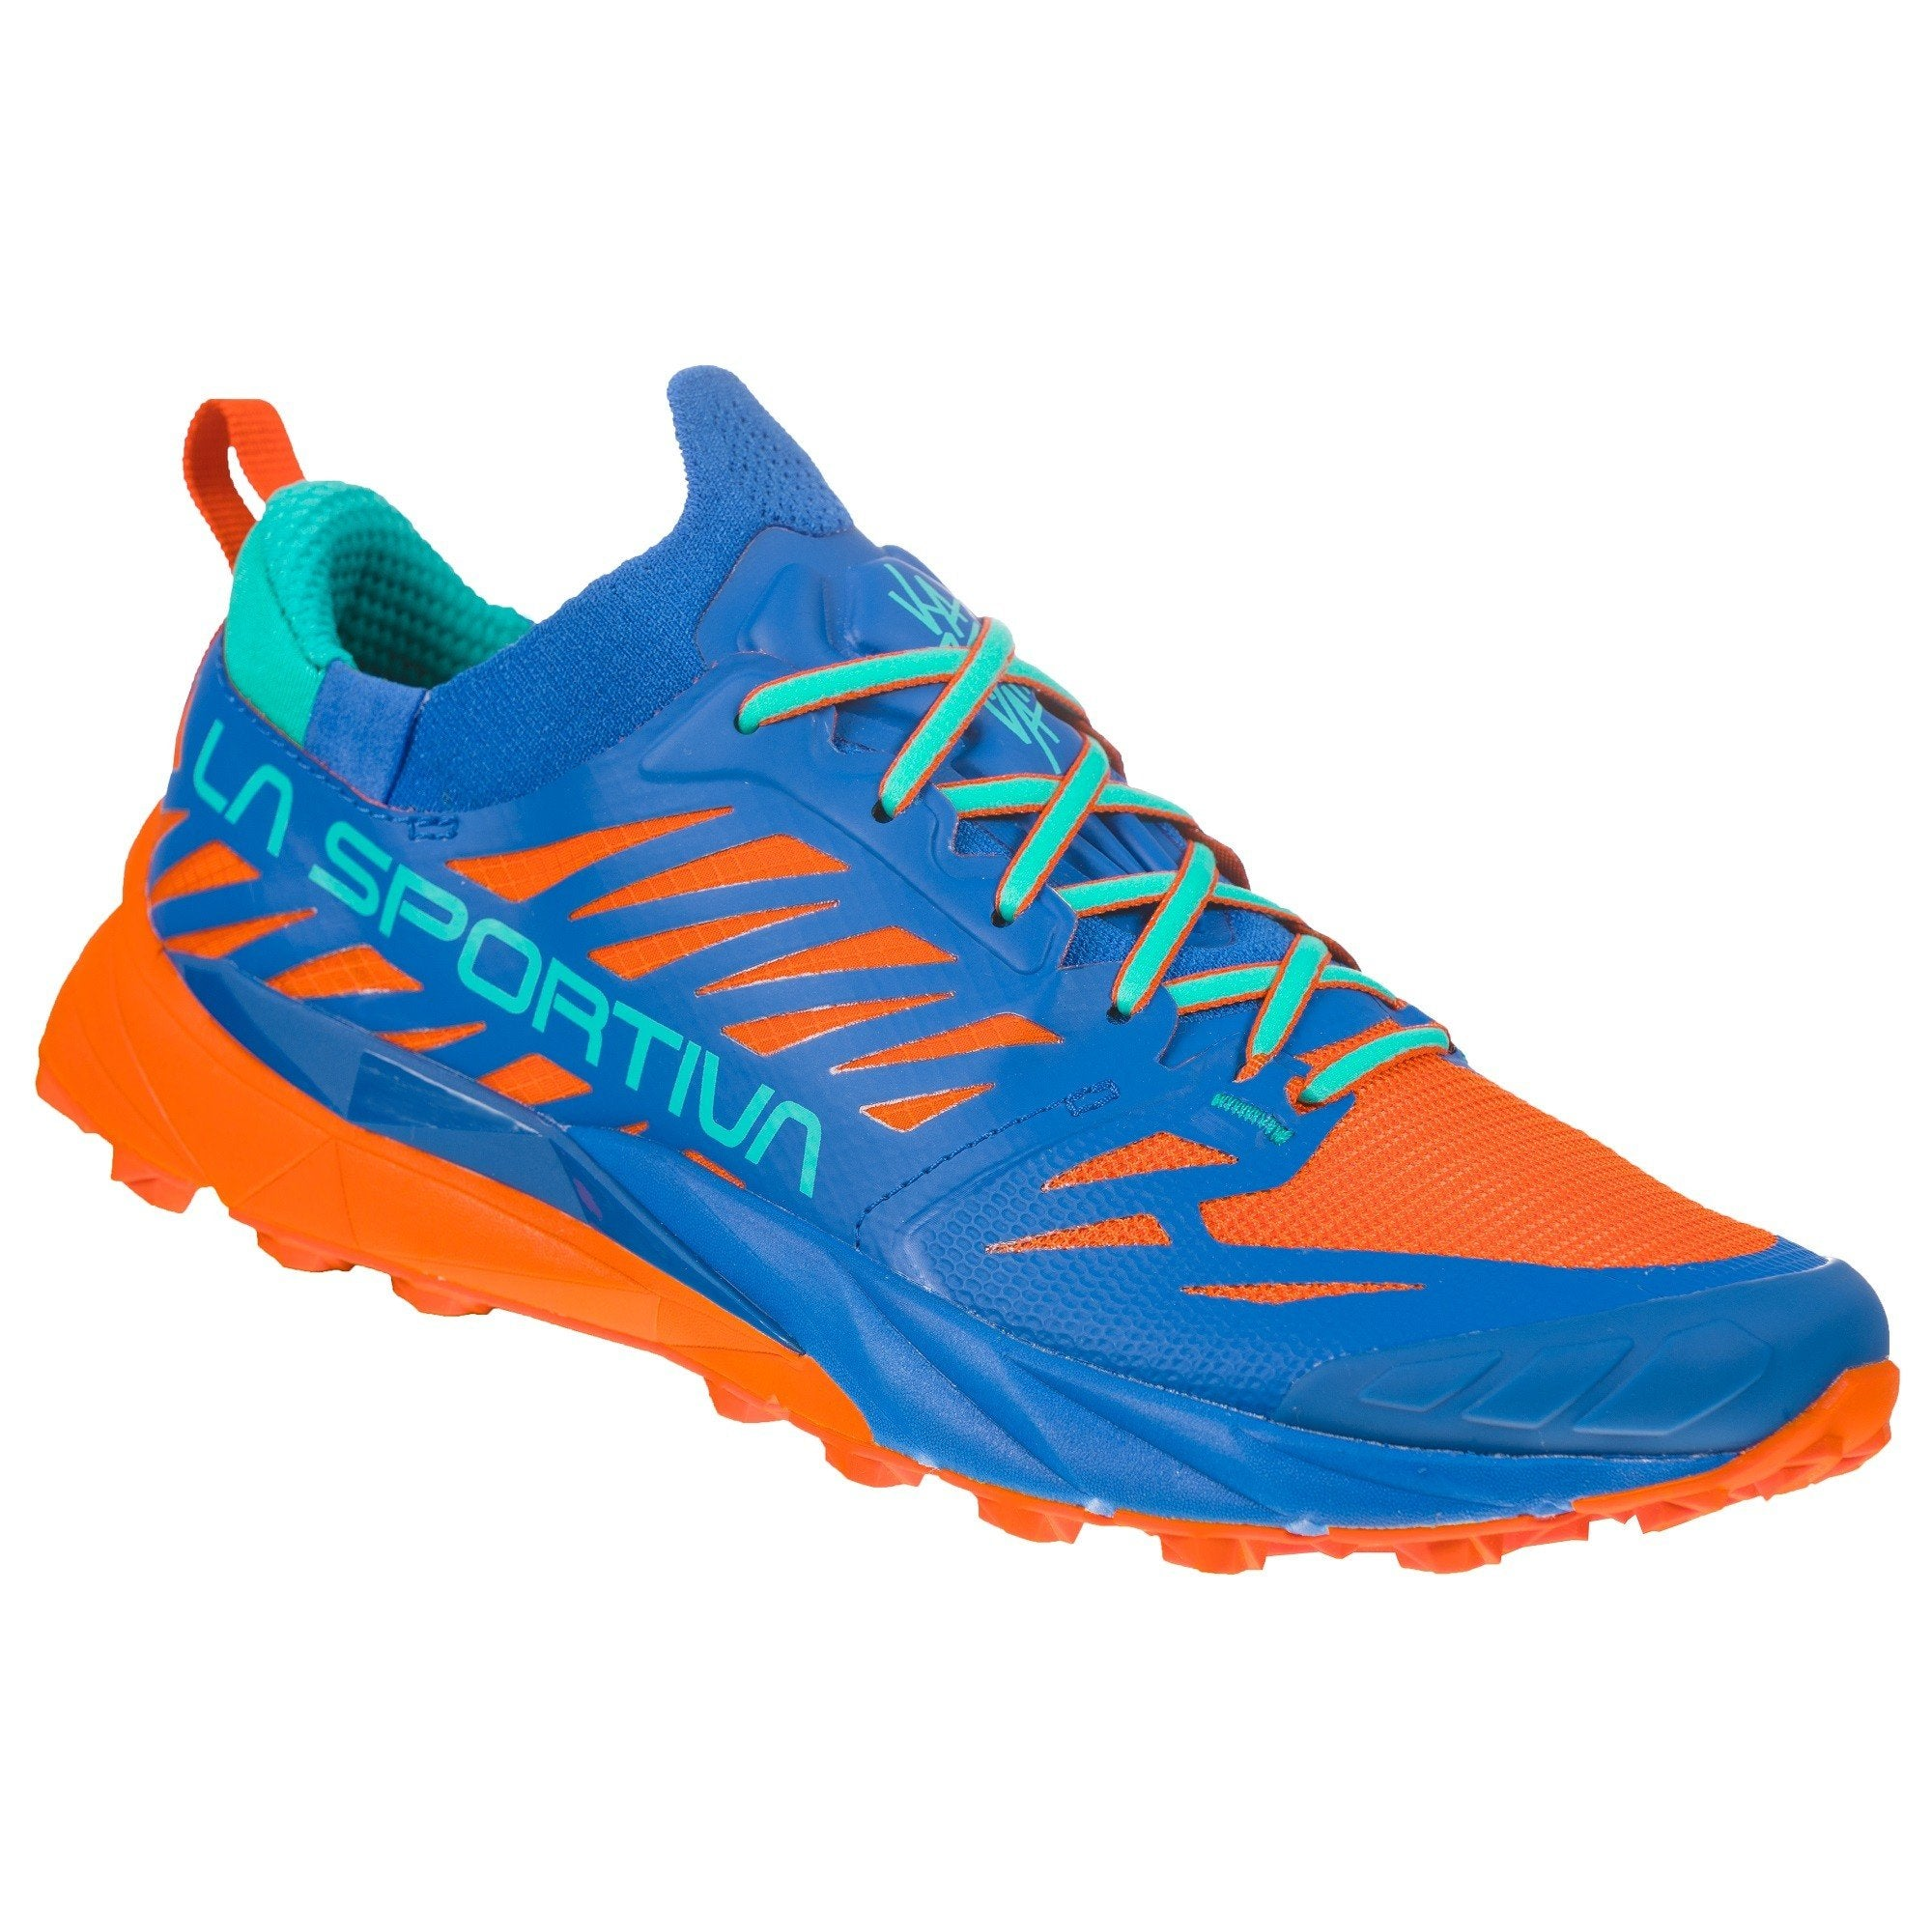 La Sportiva Kaptiva Womens trail running shoe, outer side view in blue and orange colours